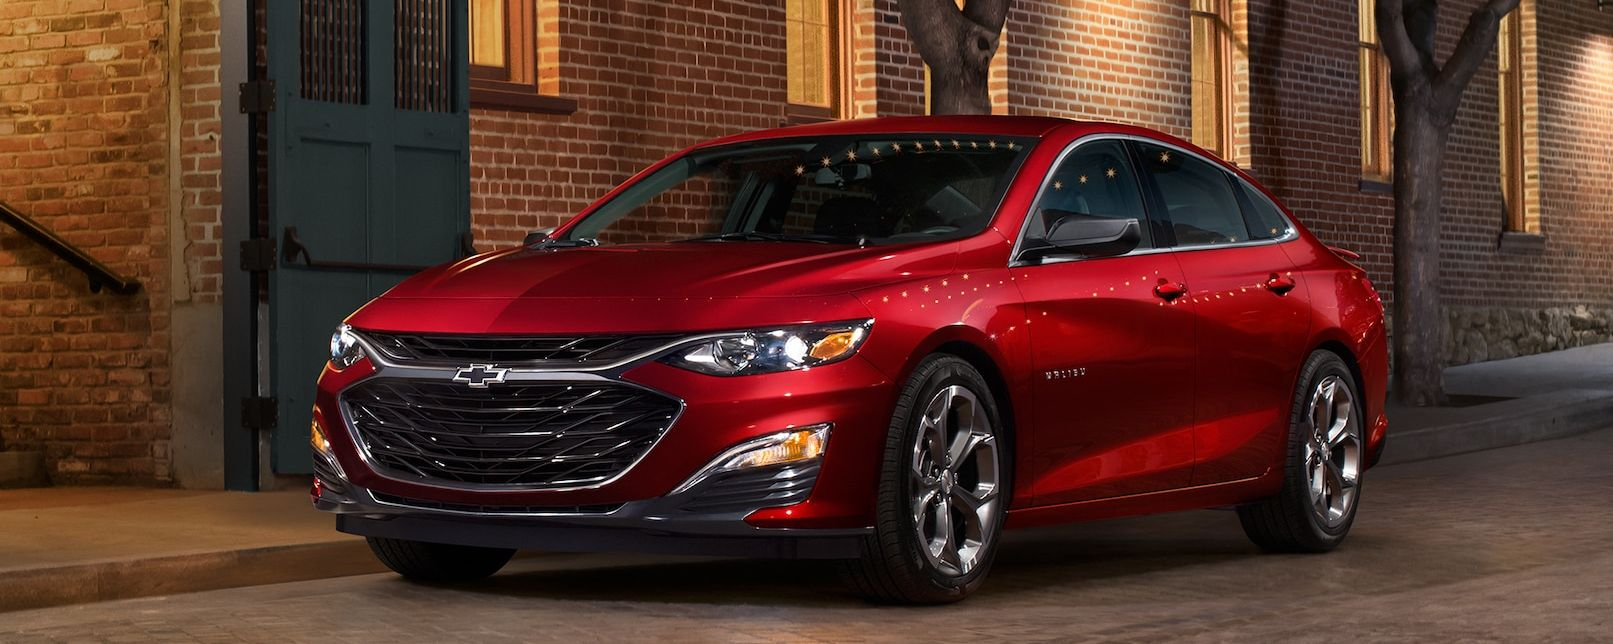 Used Chevrolet Malibu for Sale near Manassas, VA